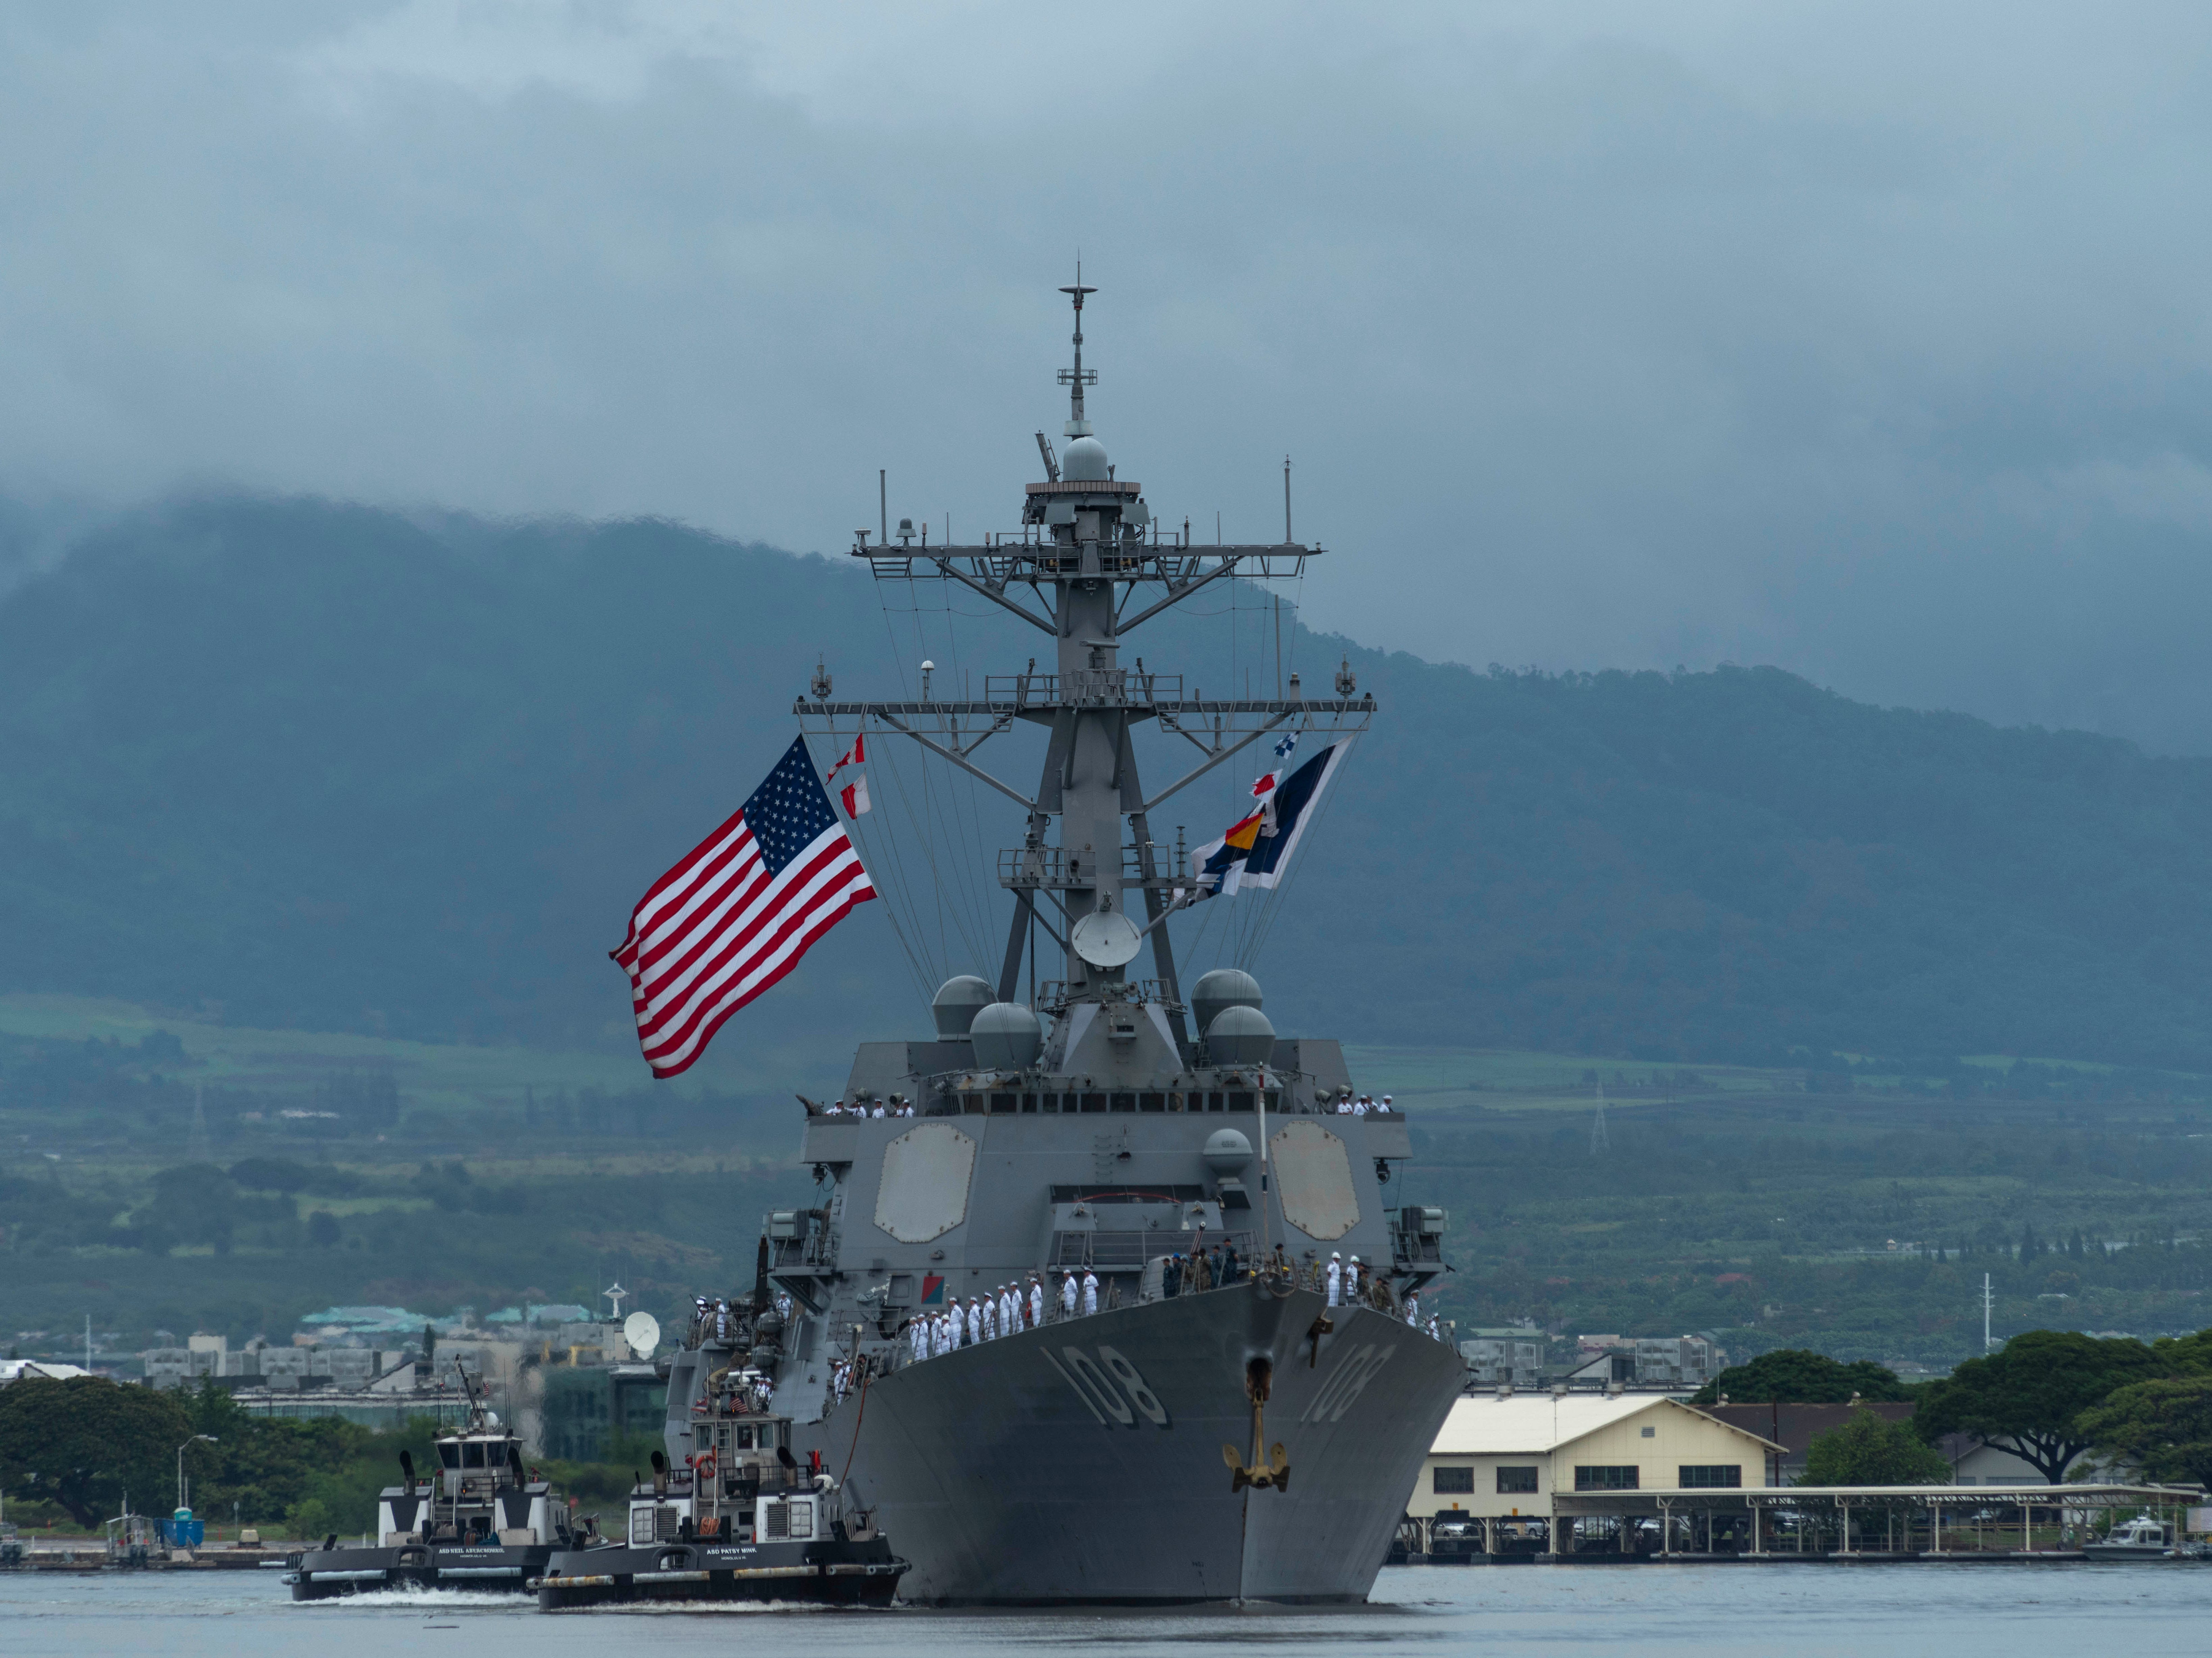 The Arleigh Burke-Class destroyer Wayne E. Meyer (DDG 108) and her crew arrives Sept. 13, 2018 at their new home port of Joint Base Pearl Harbor-Hickam.